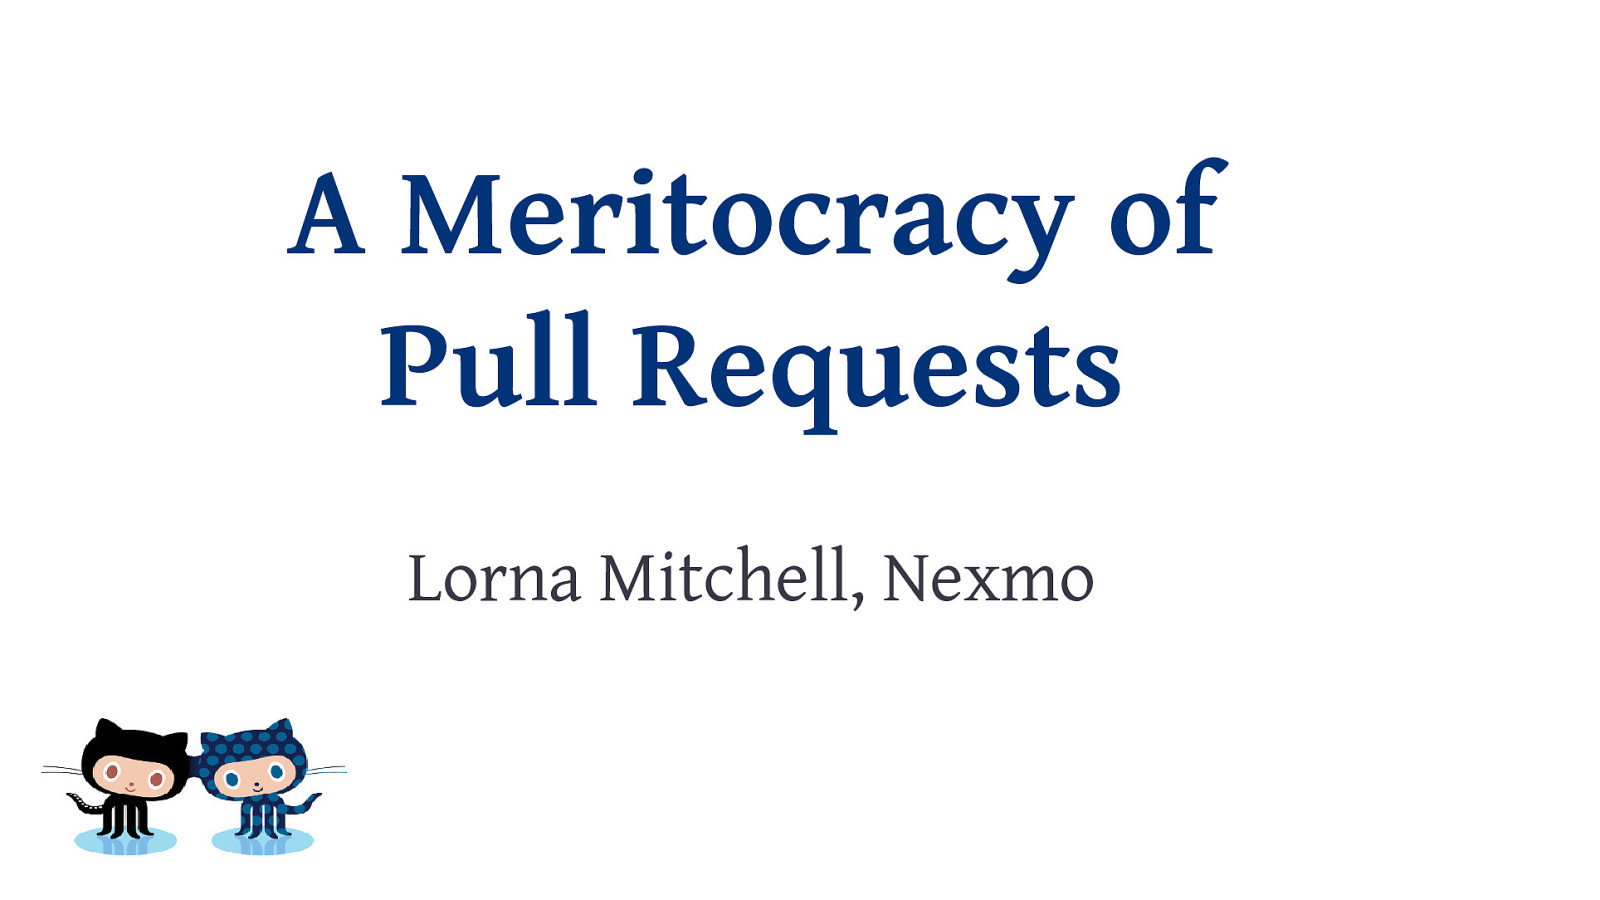 A Meritocracy of Pull Requests